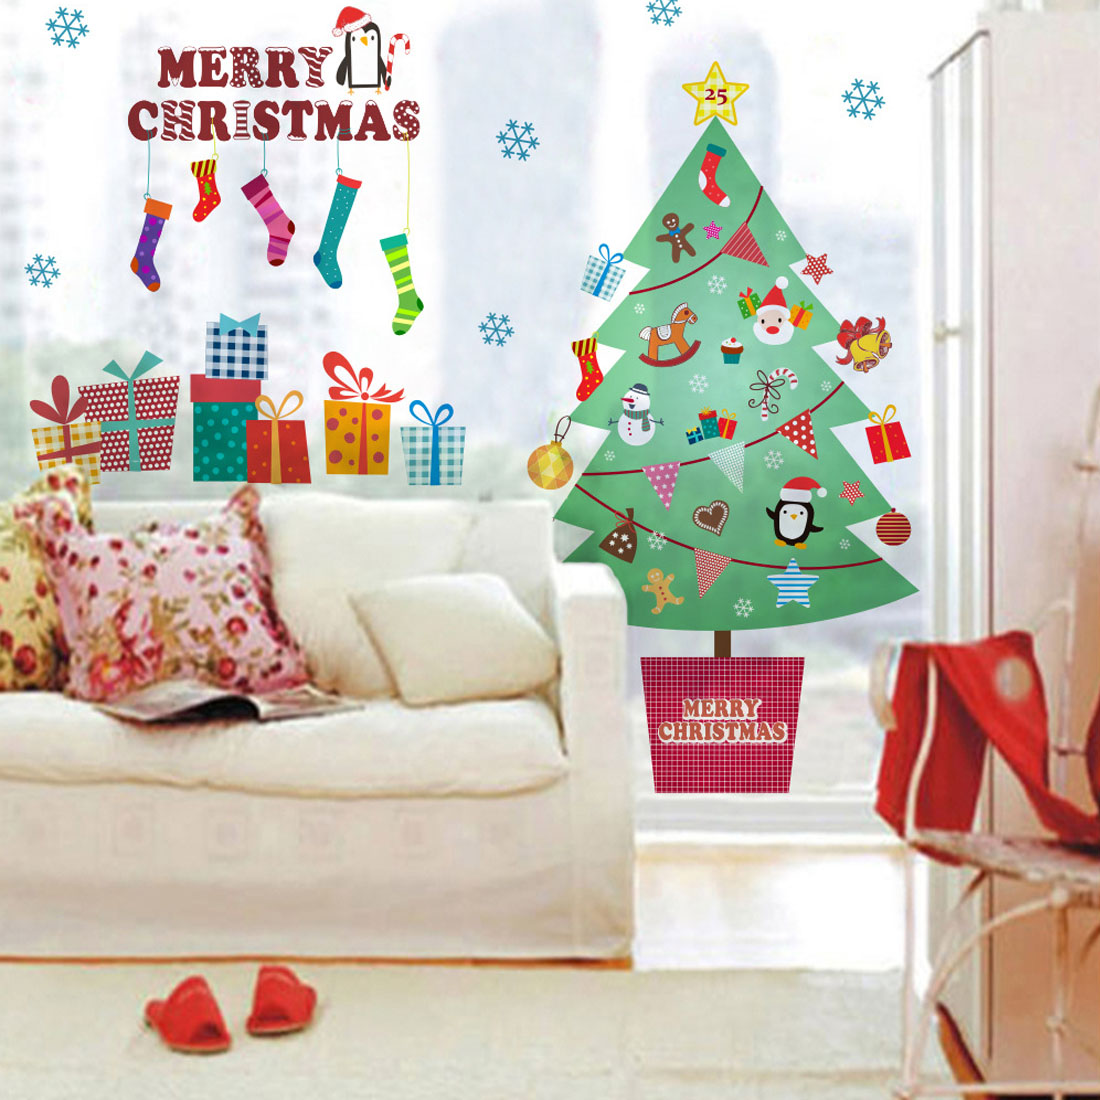 Top sale xmas tree wall stickers 2018 happy new year merry top sale xmas tree wall stickers 2018 happy new year merry christmas wall sticker xmas home shop windows decals decor in wall stickers from home garden on amipublicfo Choice Image